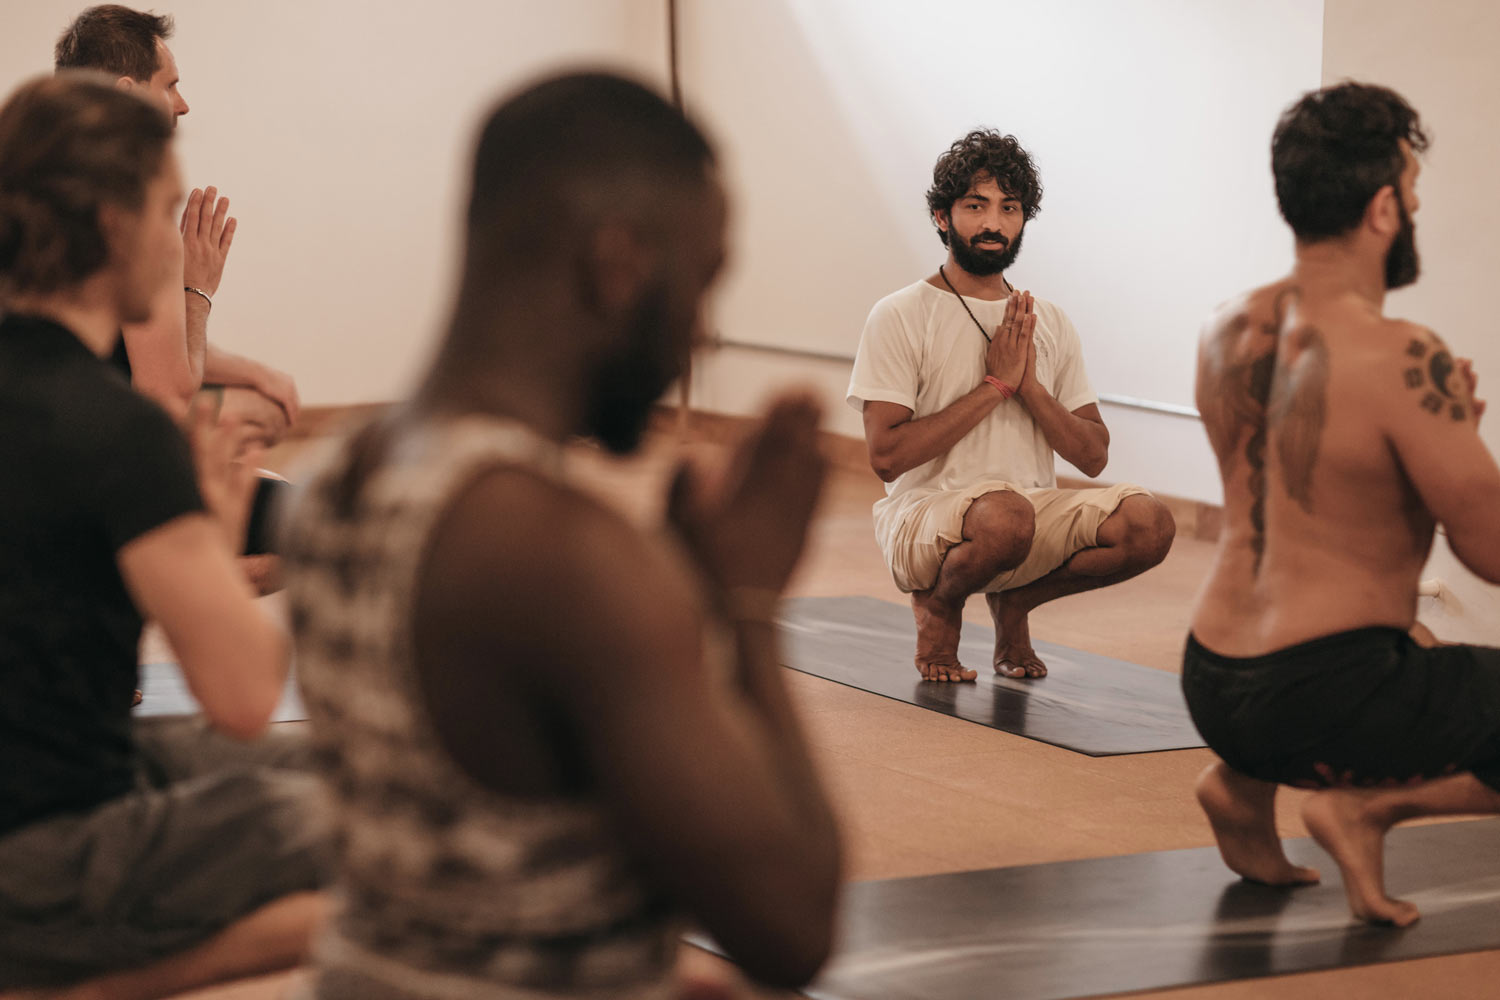 Male yoga teacher teaching a group of men